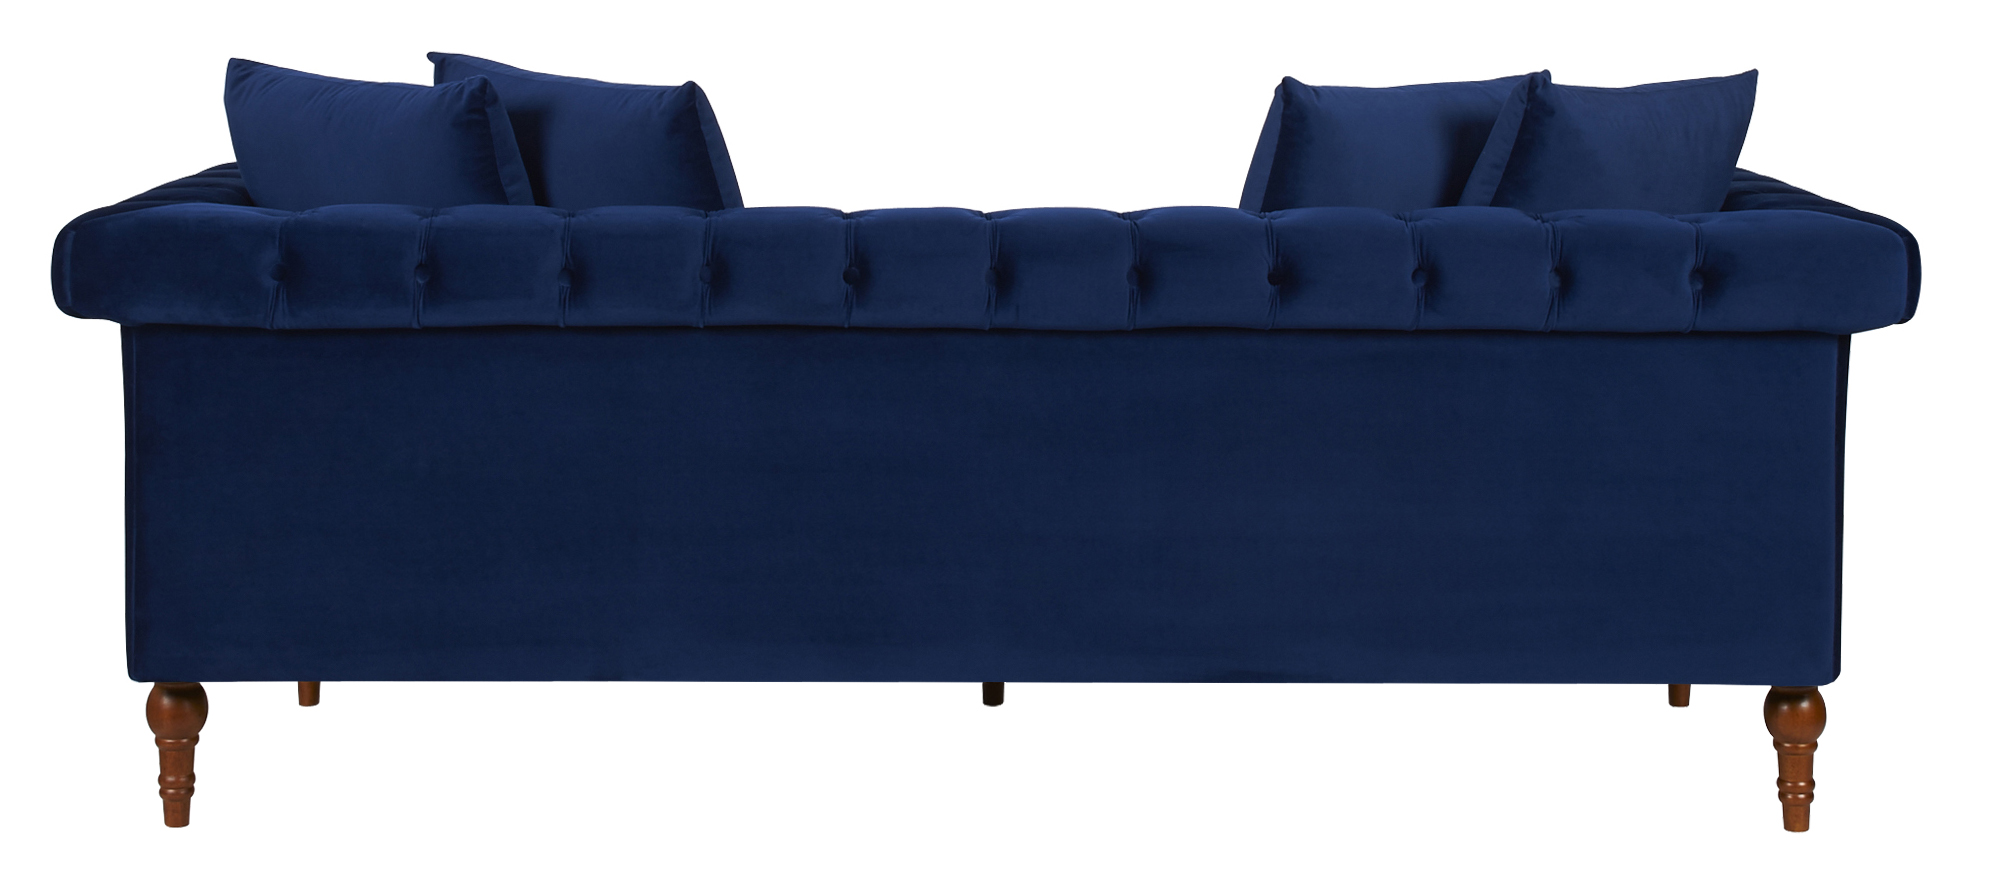 Fabric Wooden Chesterfield Sofa Navy Blue